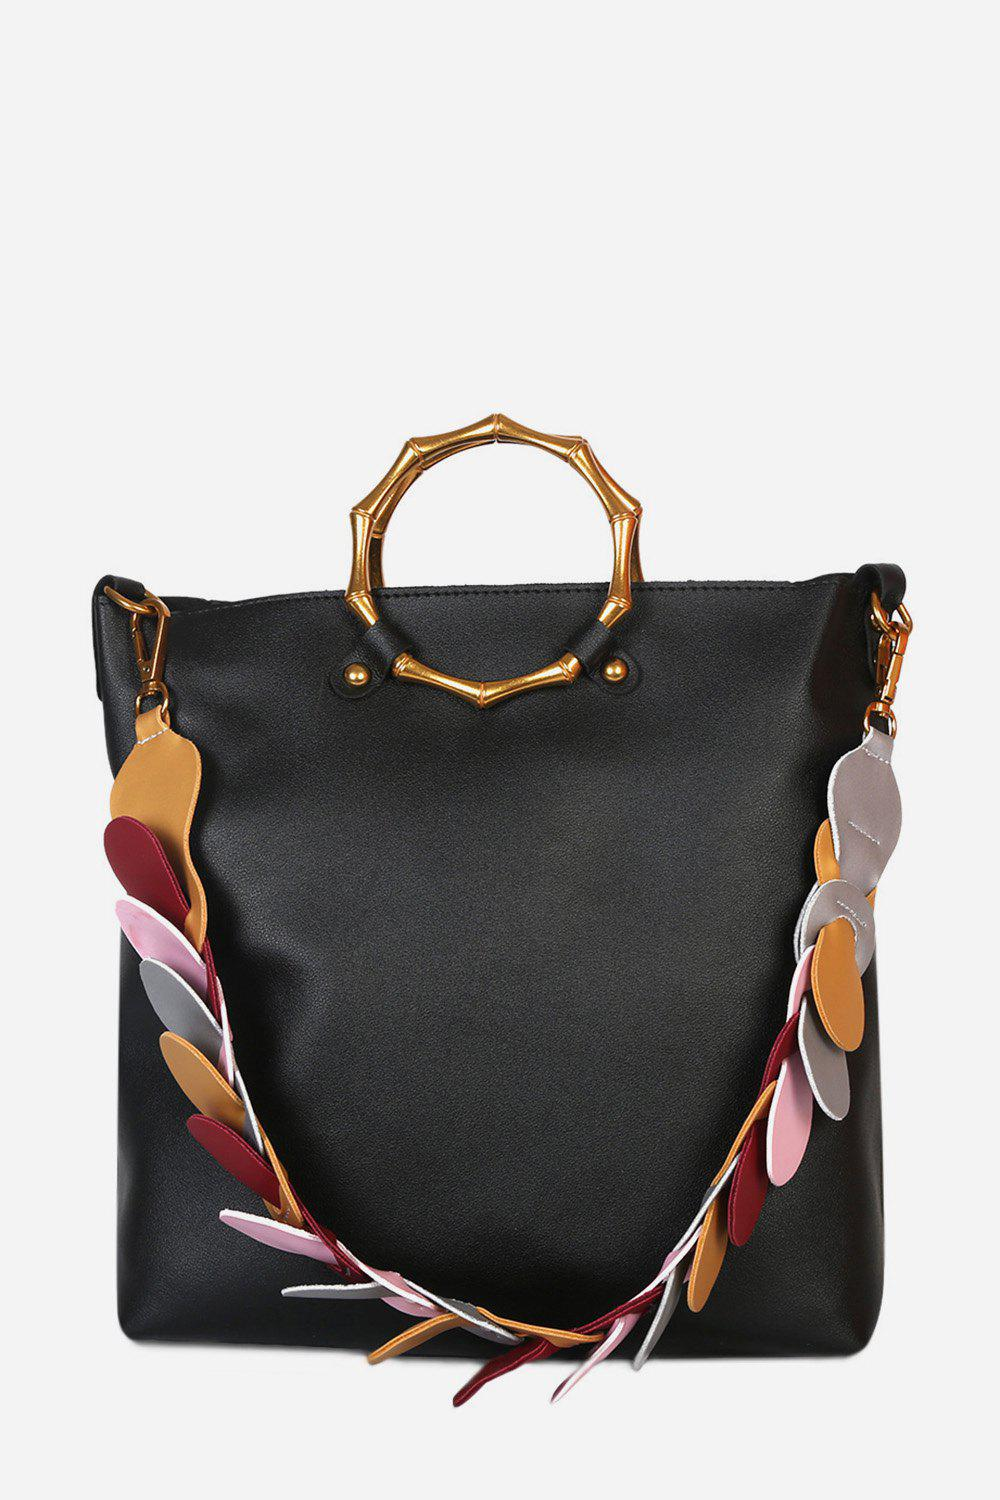 Chic Stylish Multifunctional PU Shoulder Bag for Women with Colorful Strap